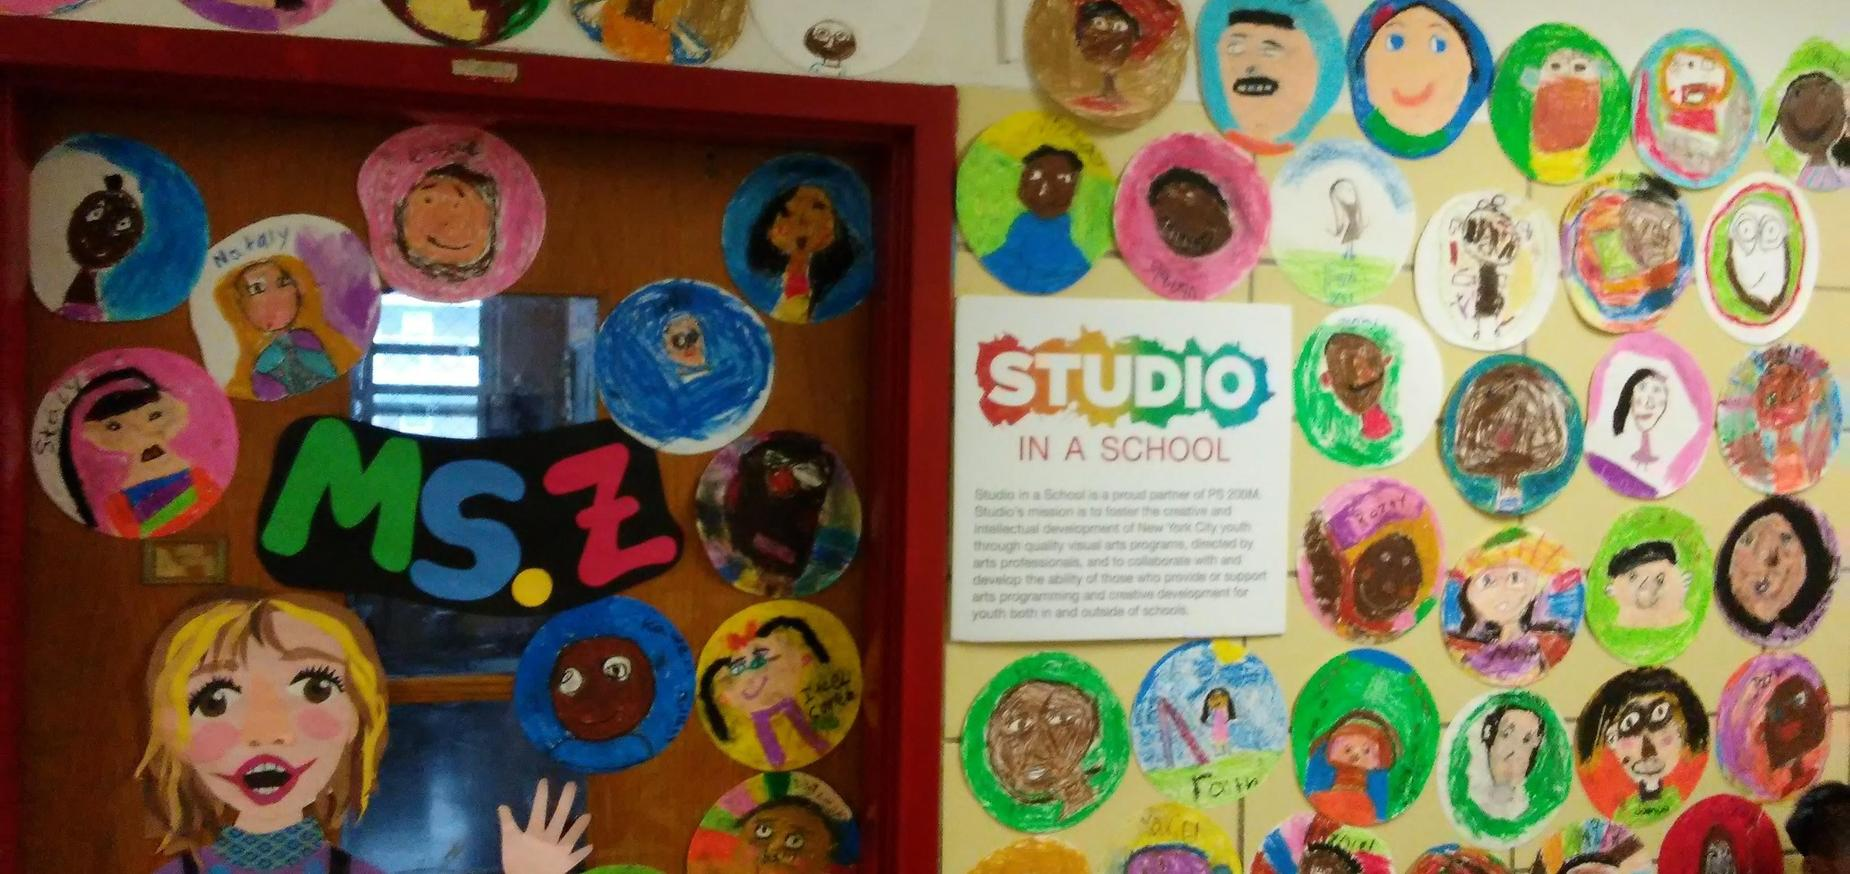 children's art work on the hallway walls